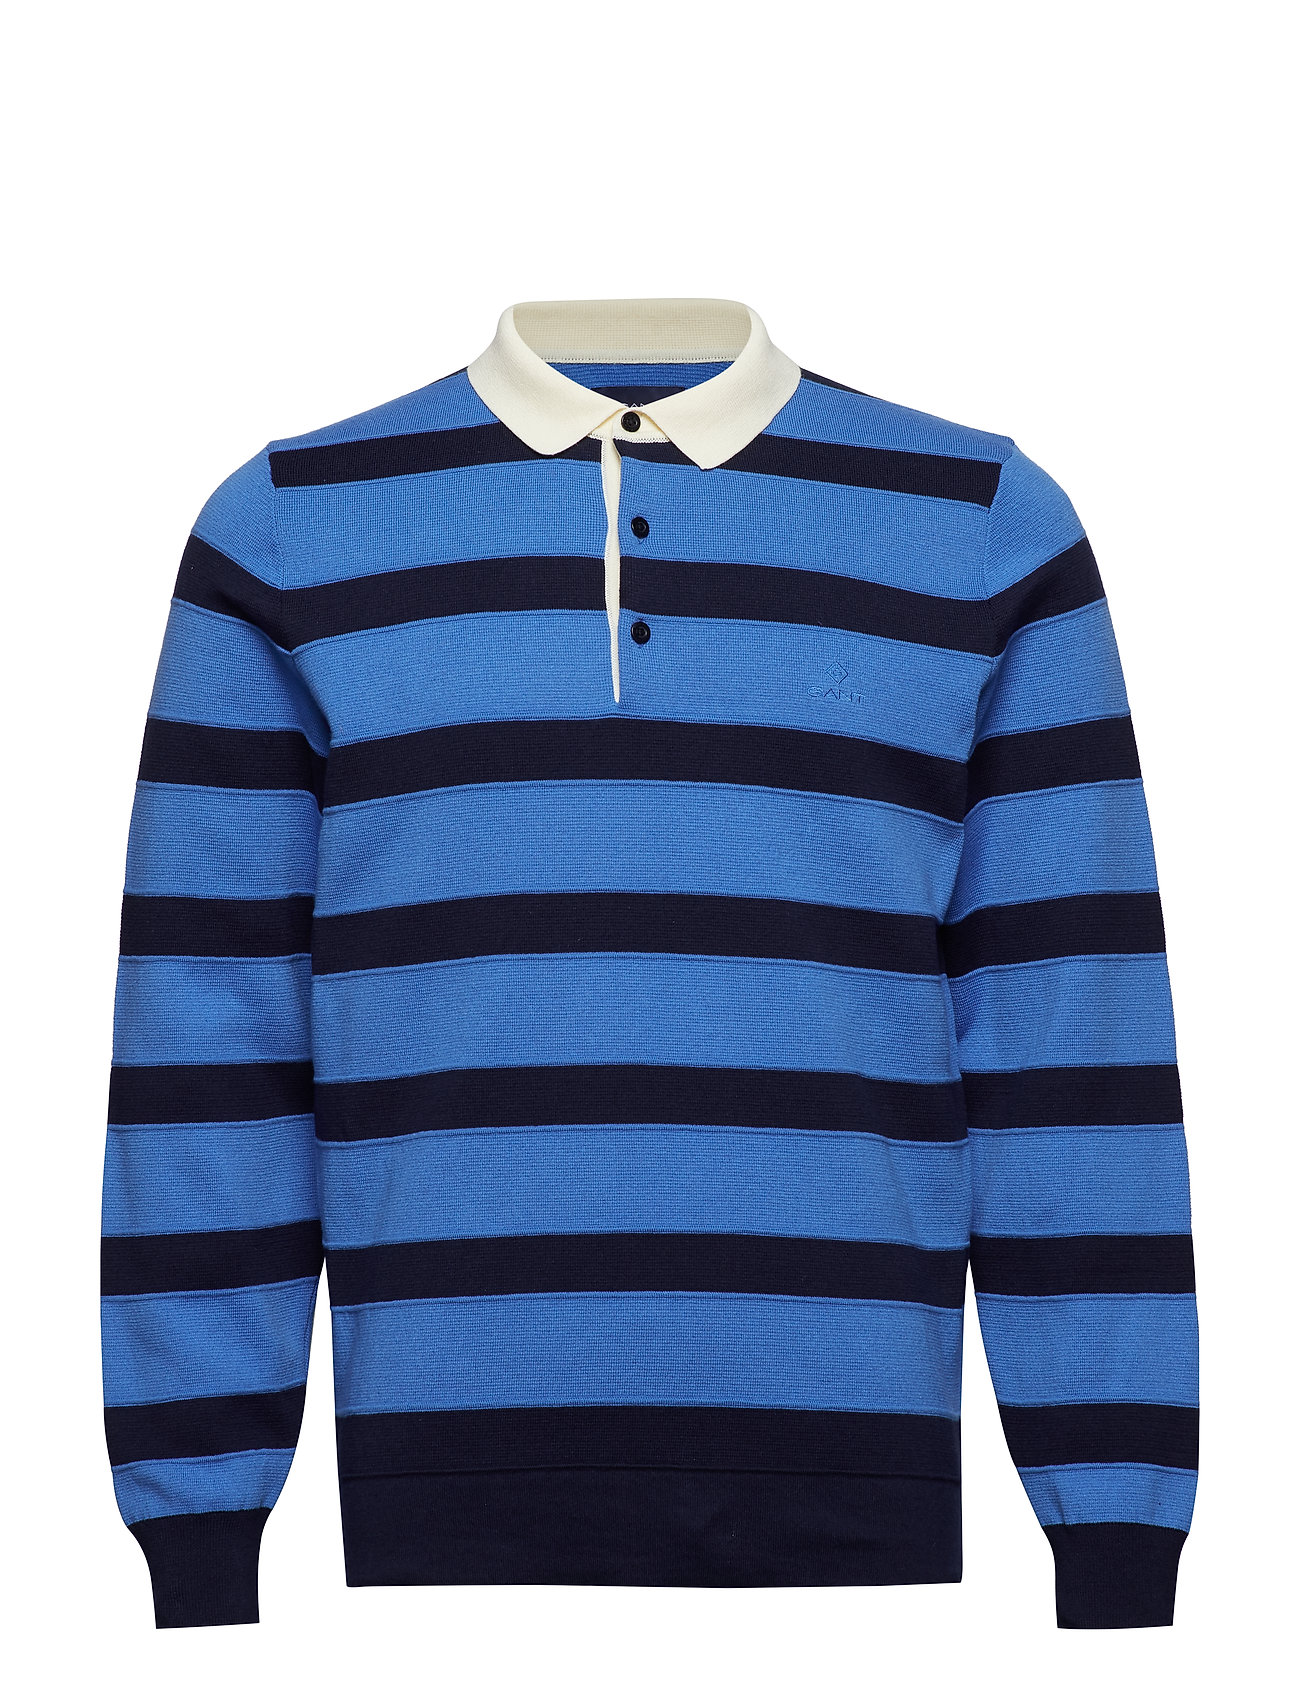 Gant O1. KNITTED STRIPED RUGGER - PALACE BLUE